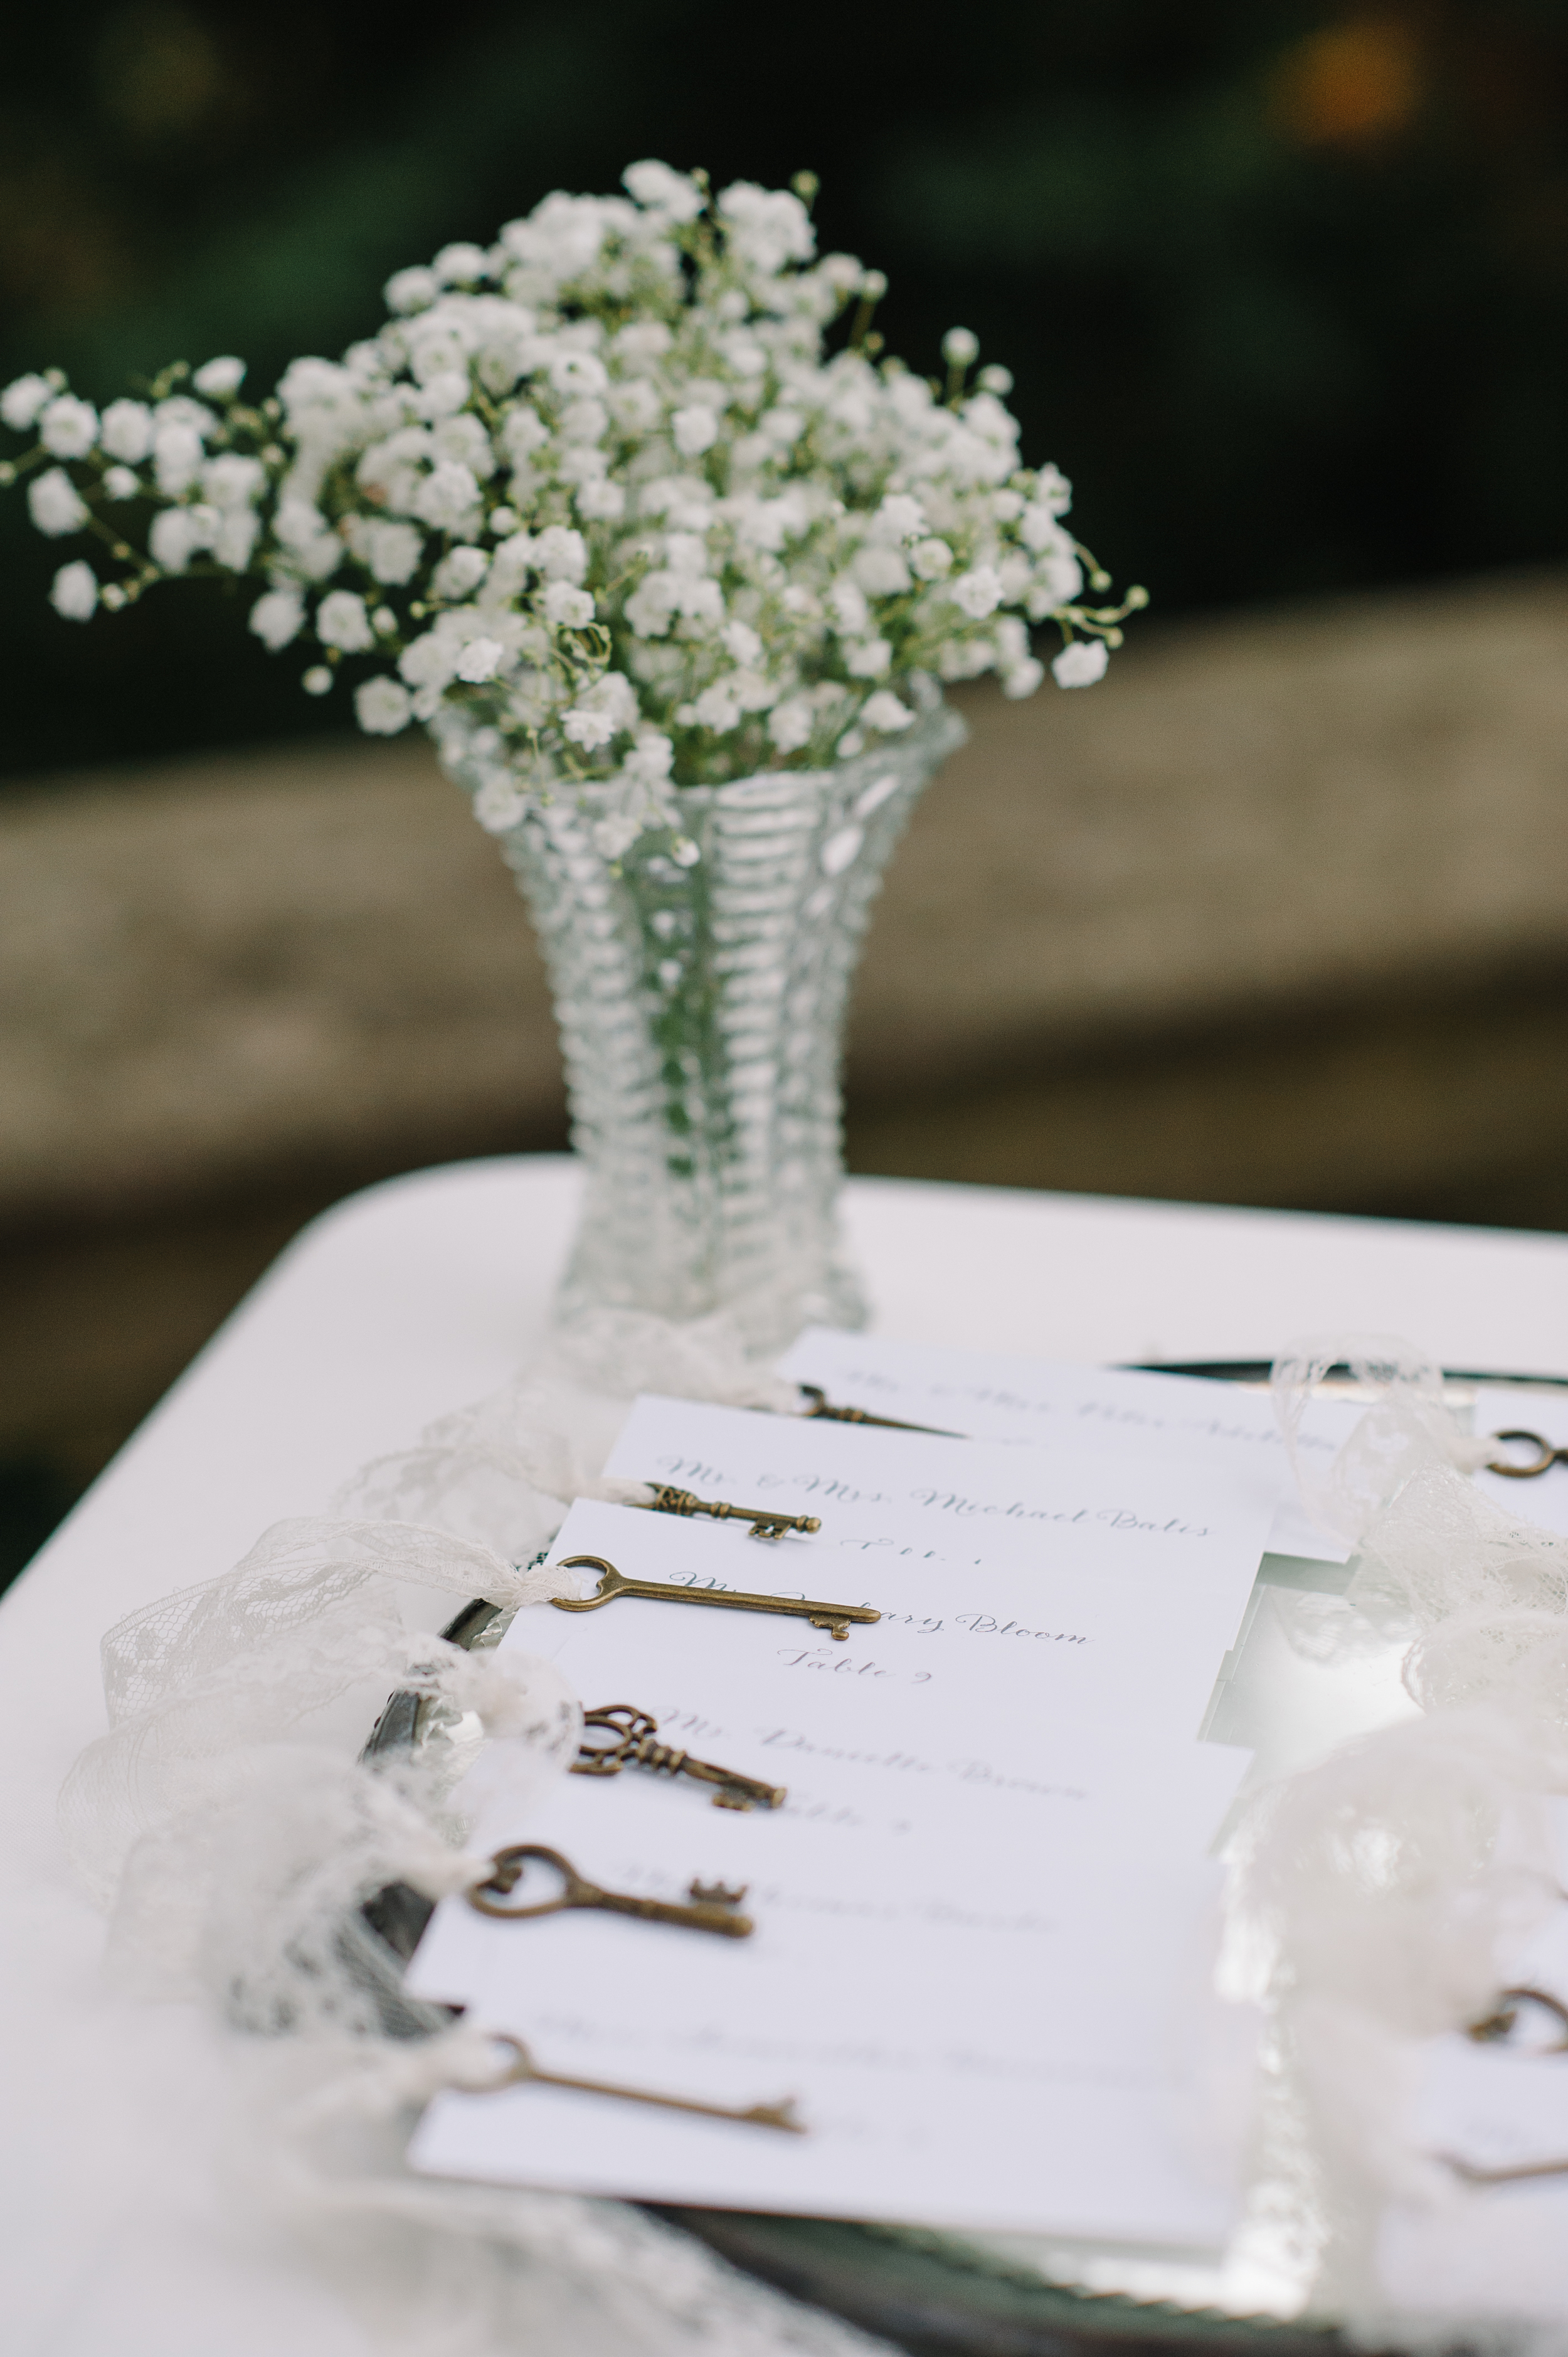 waveny_house_wedding_New_canaan_CT_Amy_Champagne_Events529.jpg